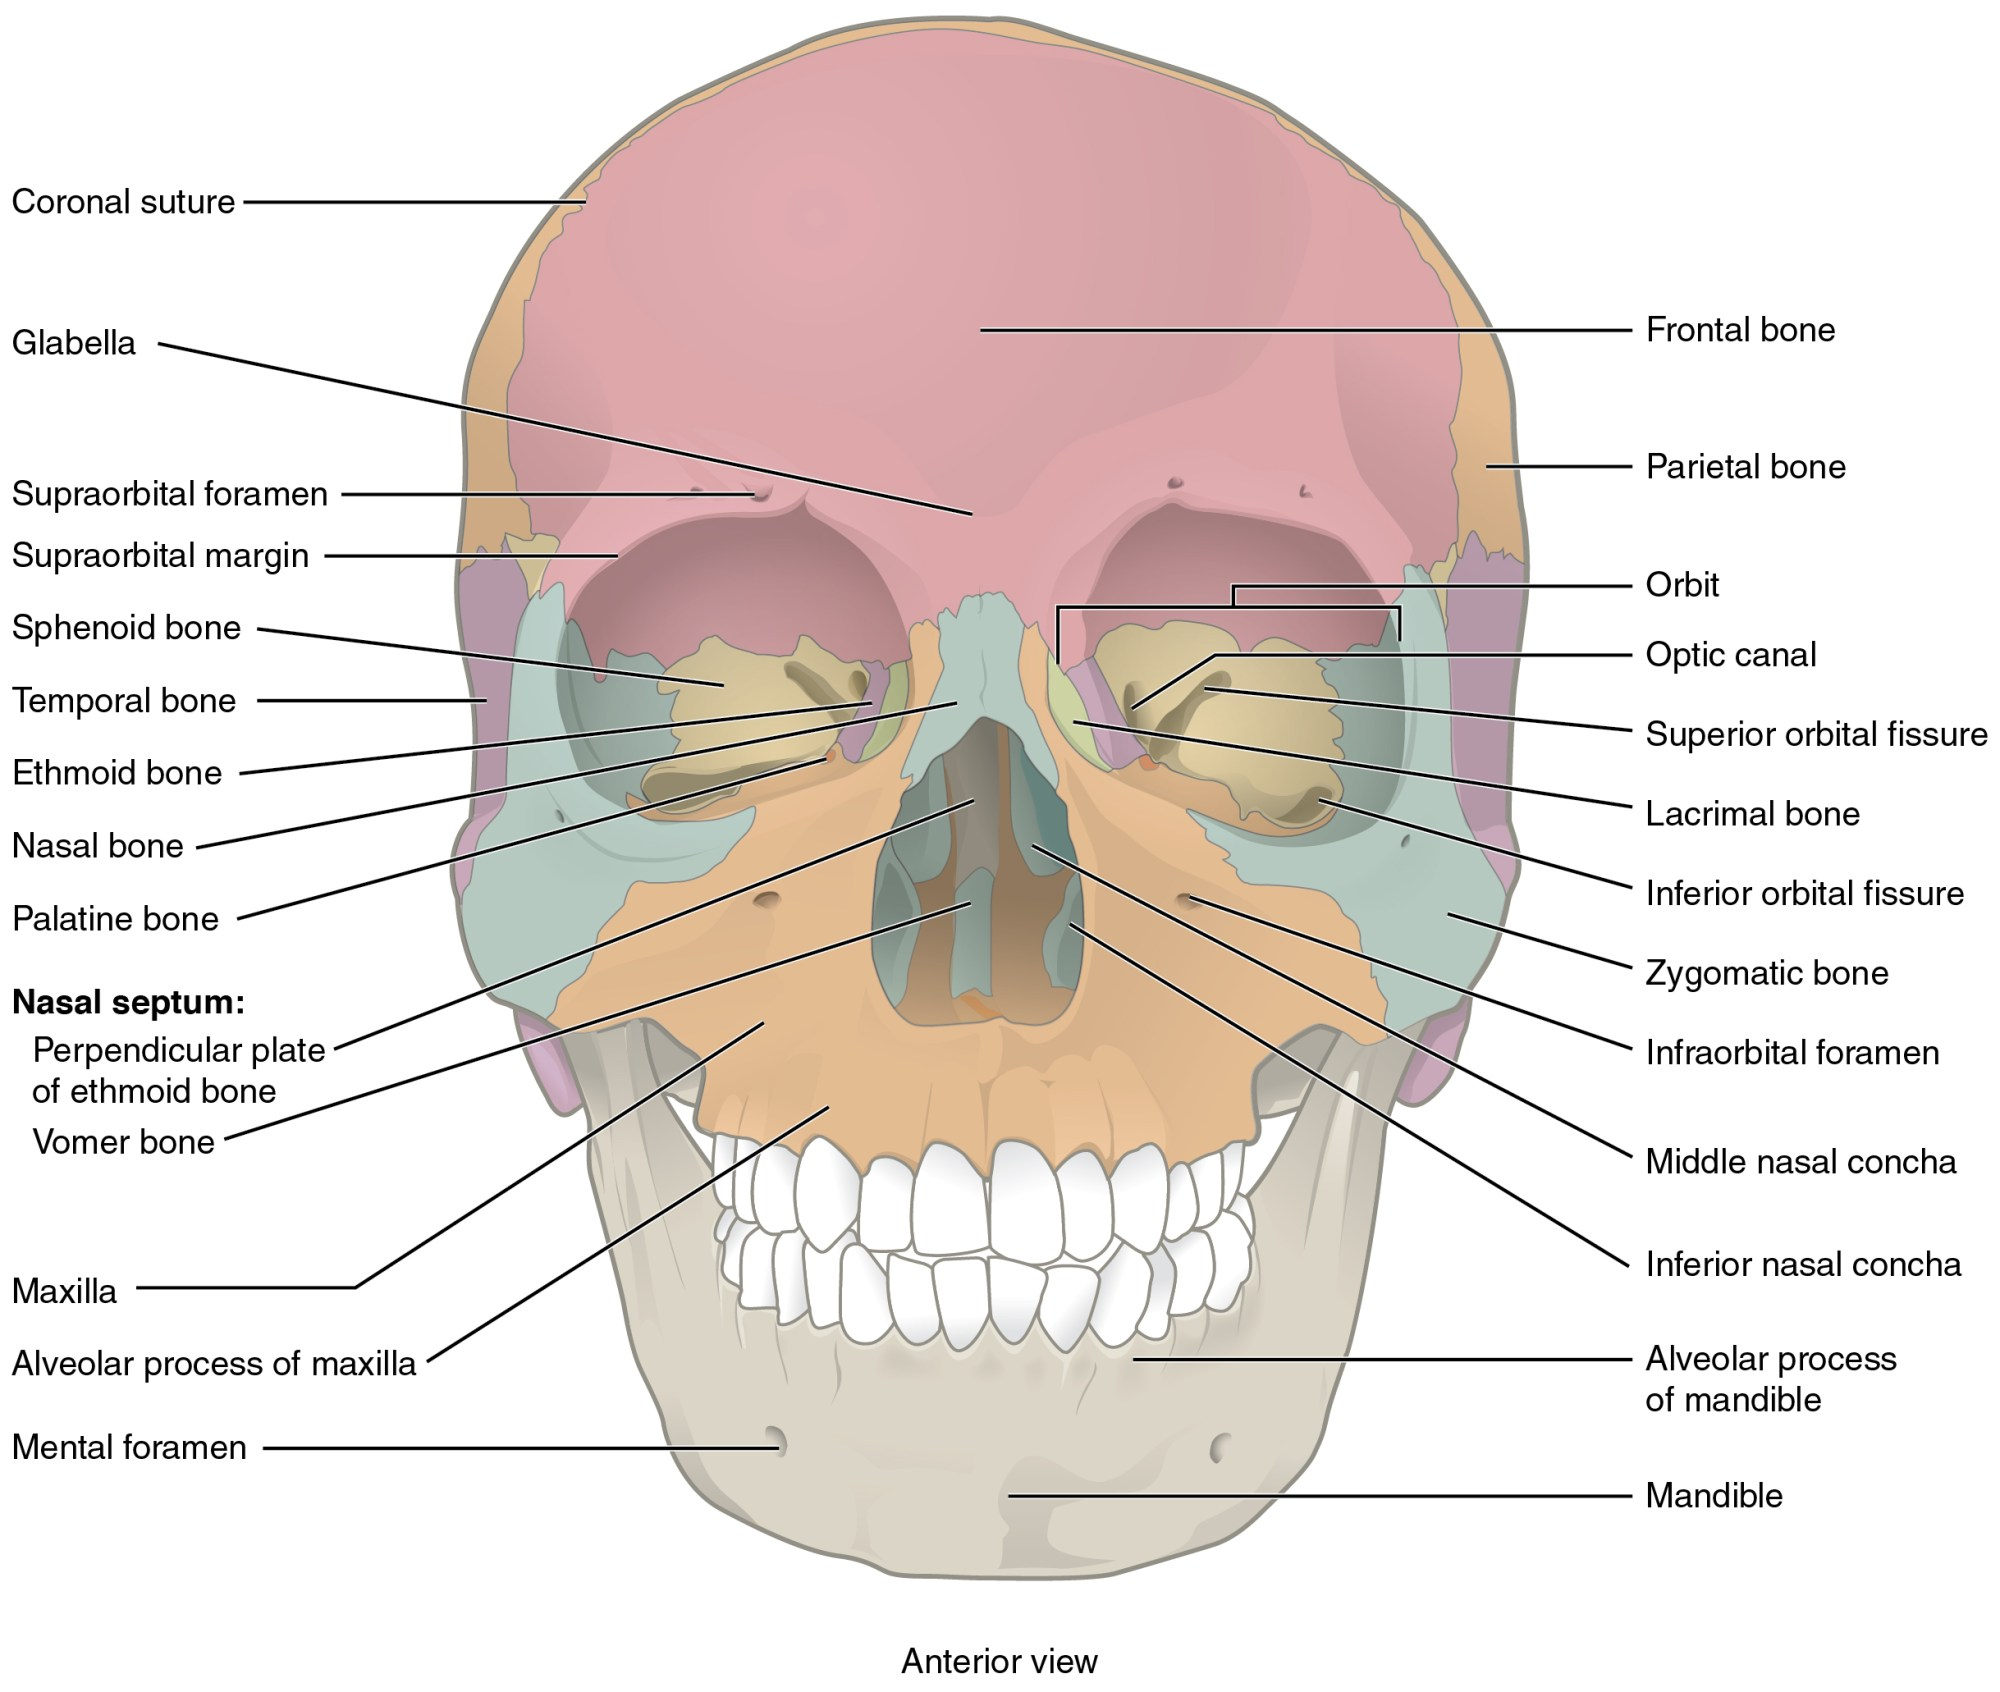 hight resolution of this image shows the anterior view from the front of the human skull